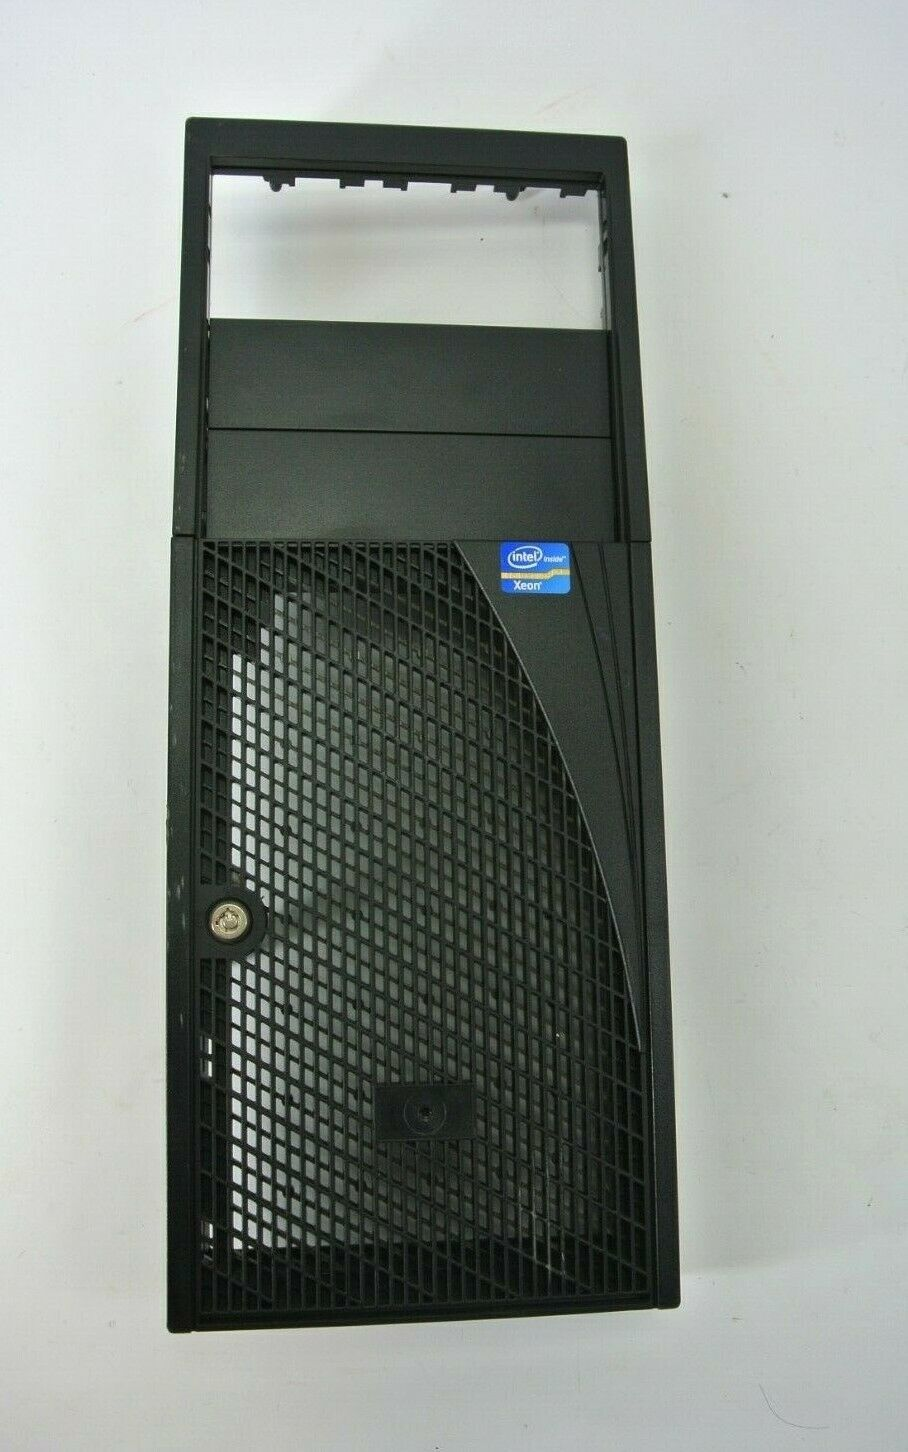 Primary image for Intel Tower Server Front Bezel